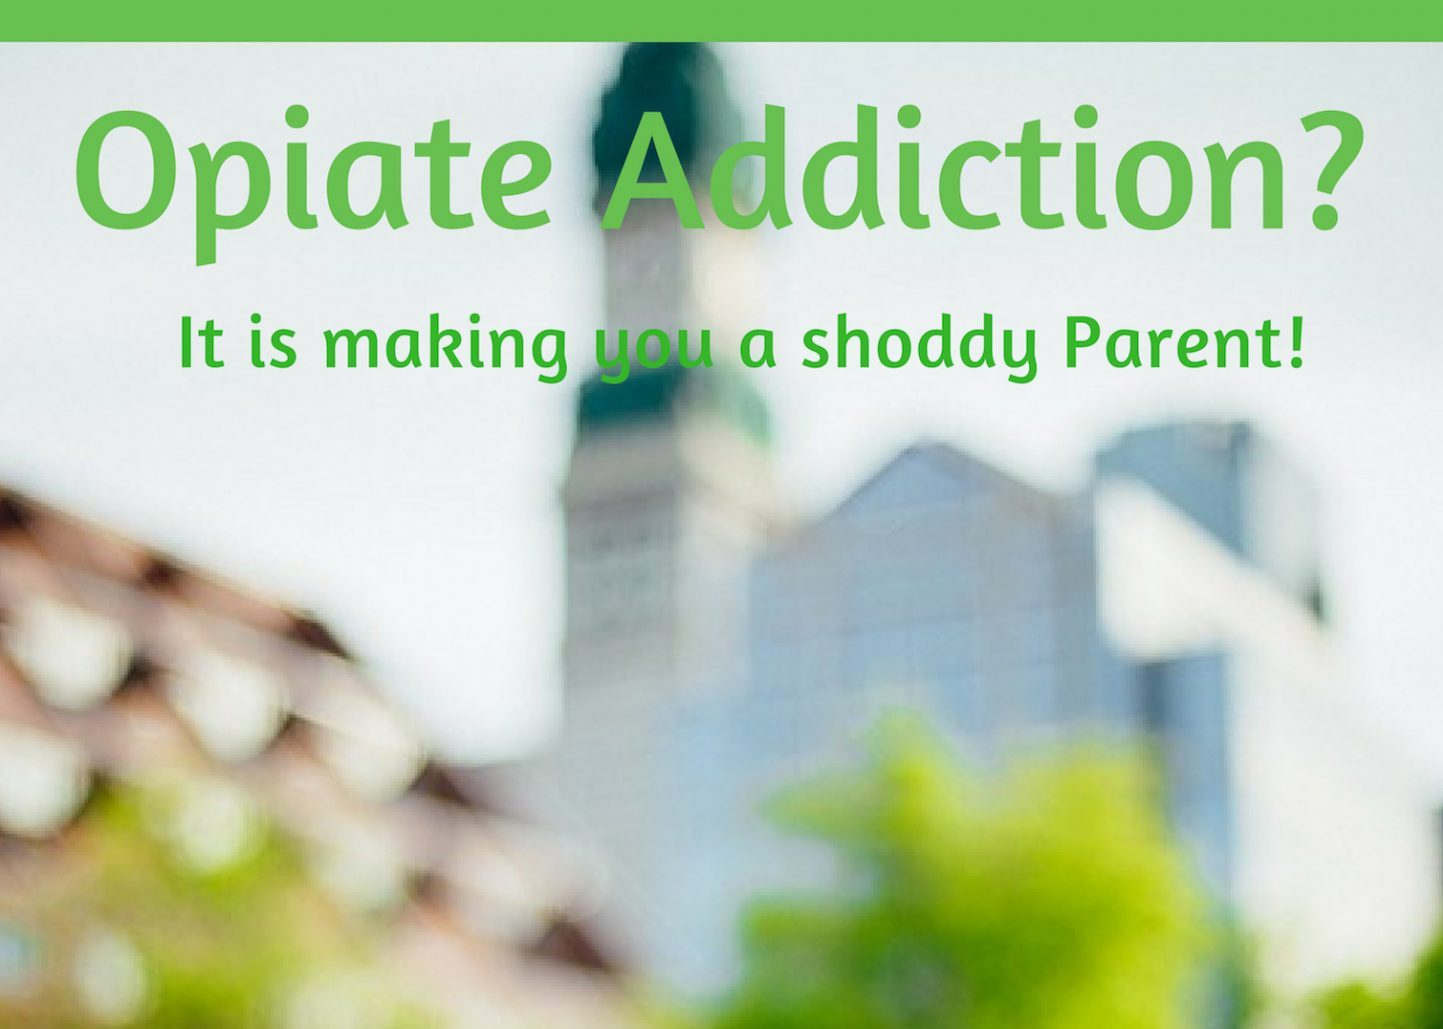 How seeking treatment for Opiate Addiction makes you a better parent?